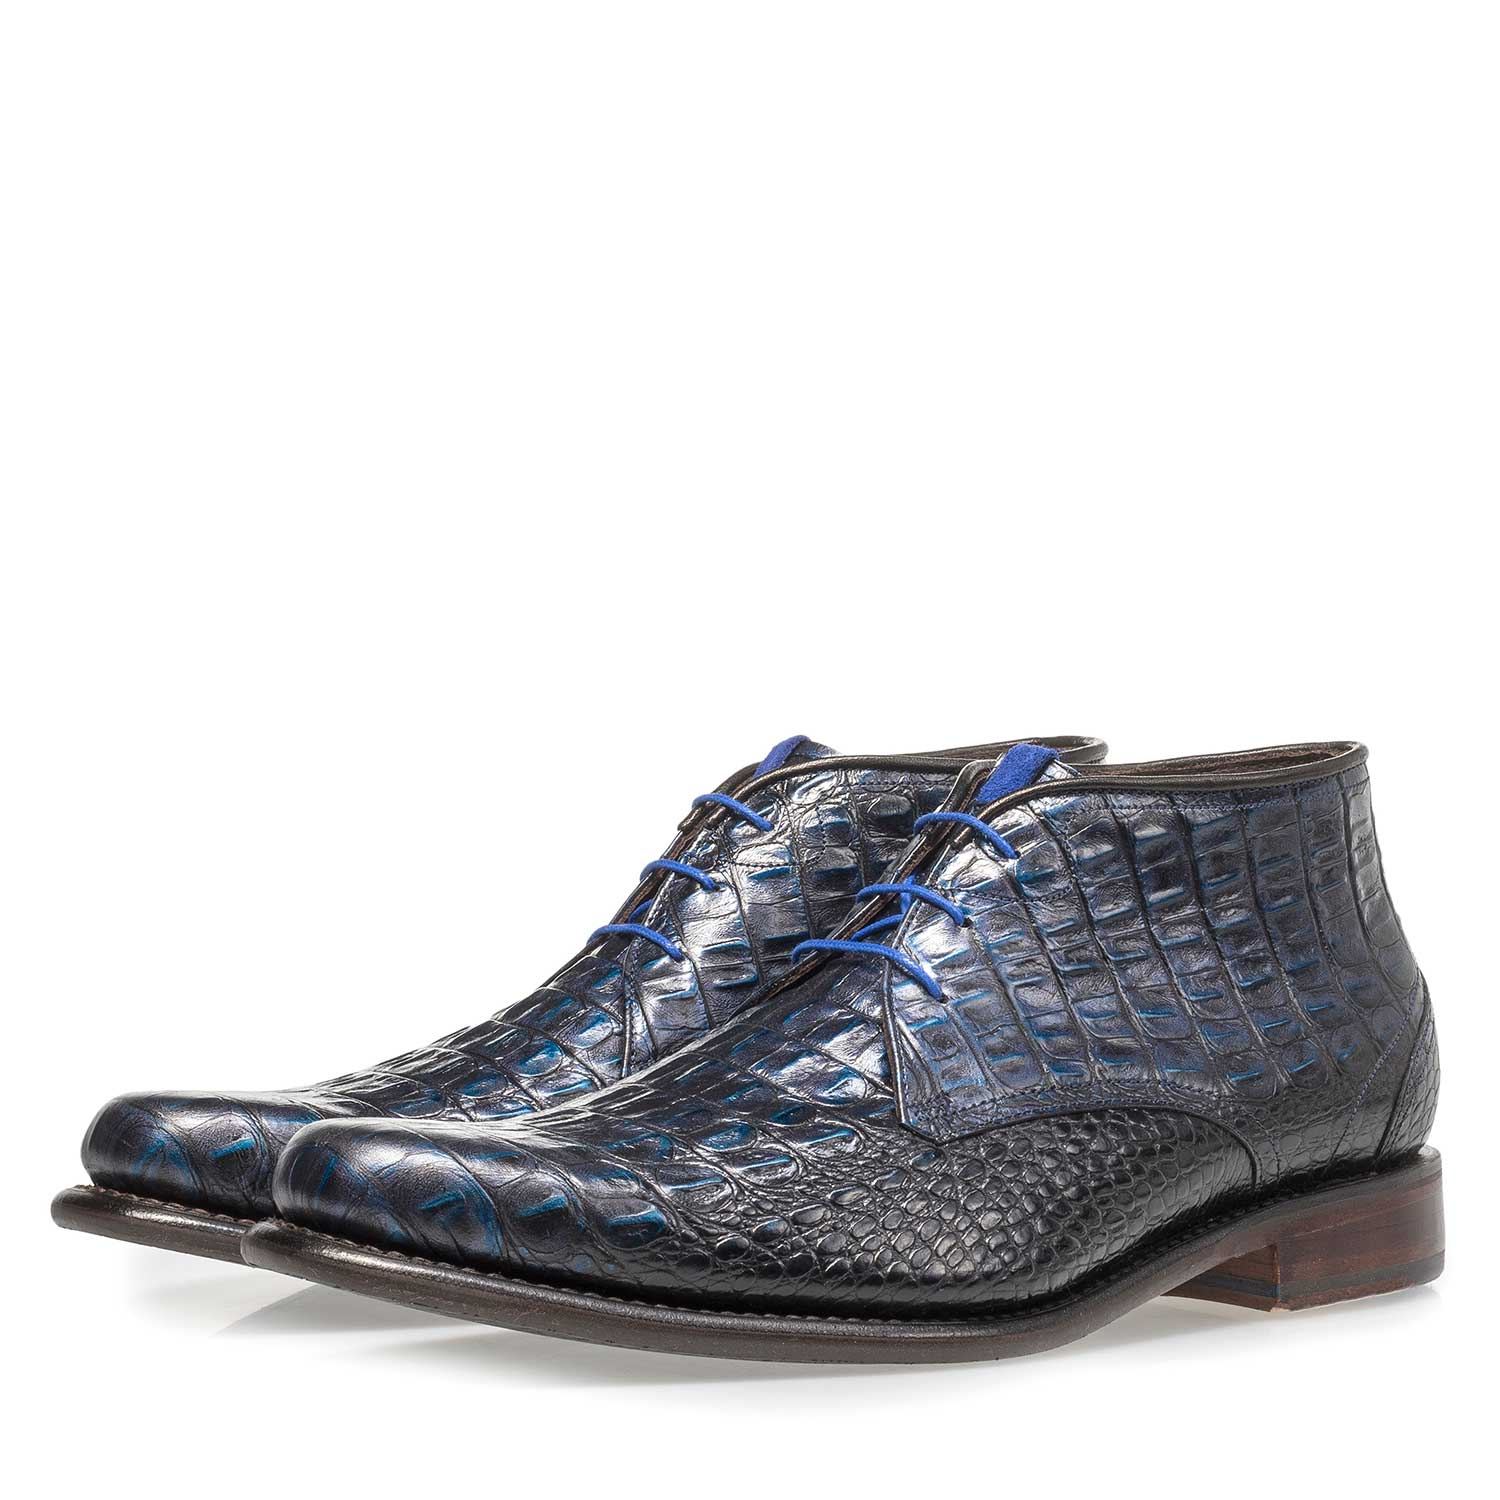 10634/07 - Blue leather lace boot with croco print